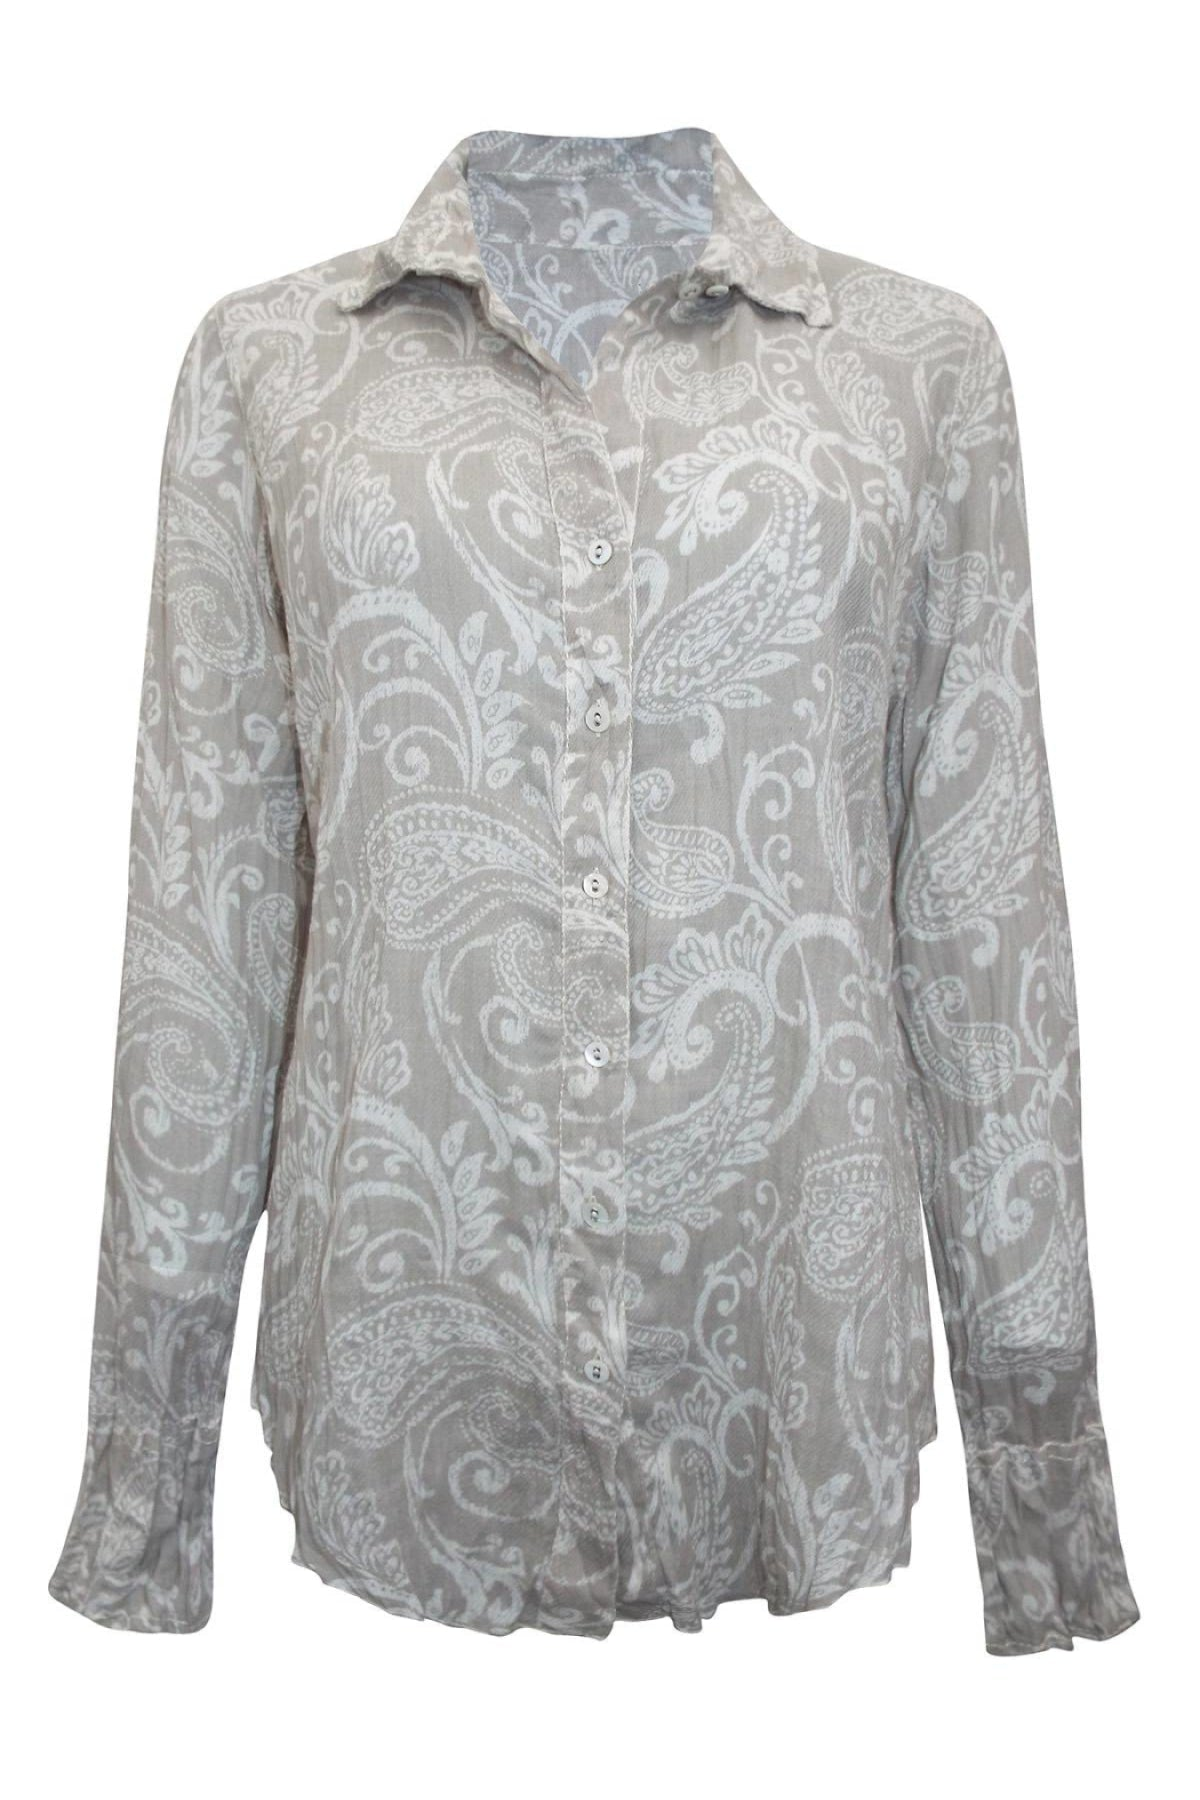 Cino New York Crinkle Cotton Floral Fitted Shirt | 10 / Stone Paisley Secret Label